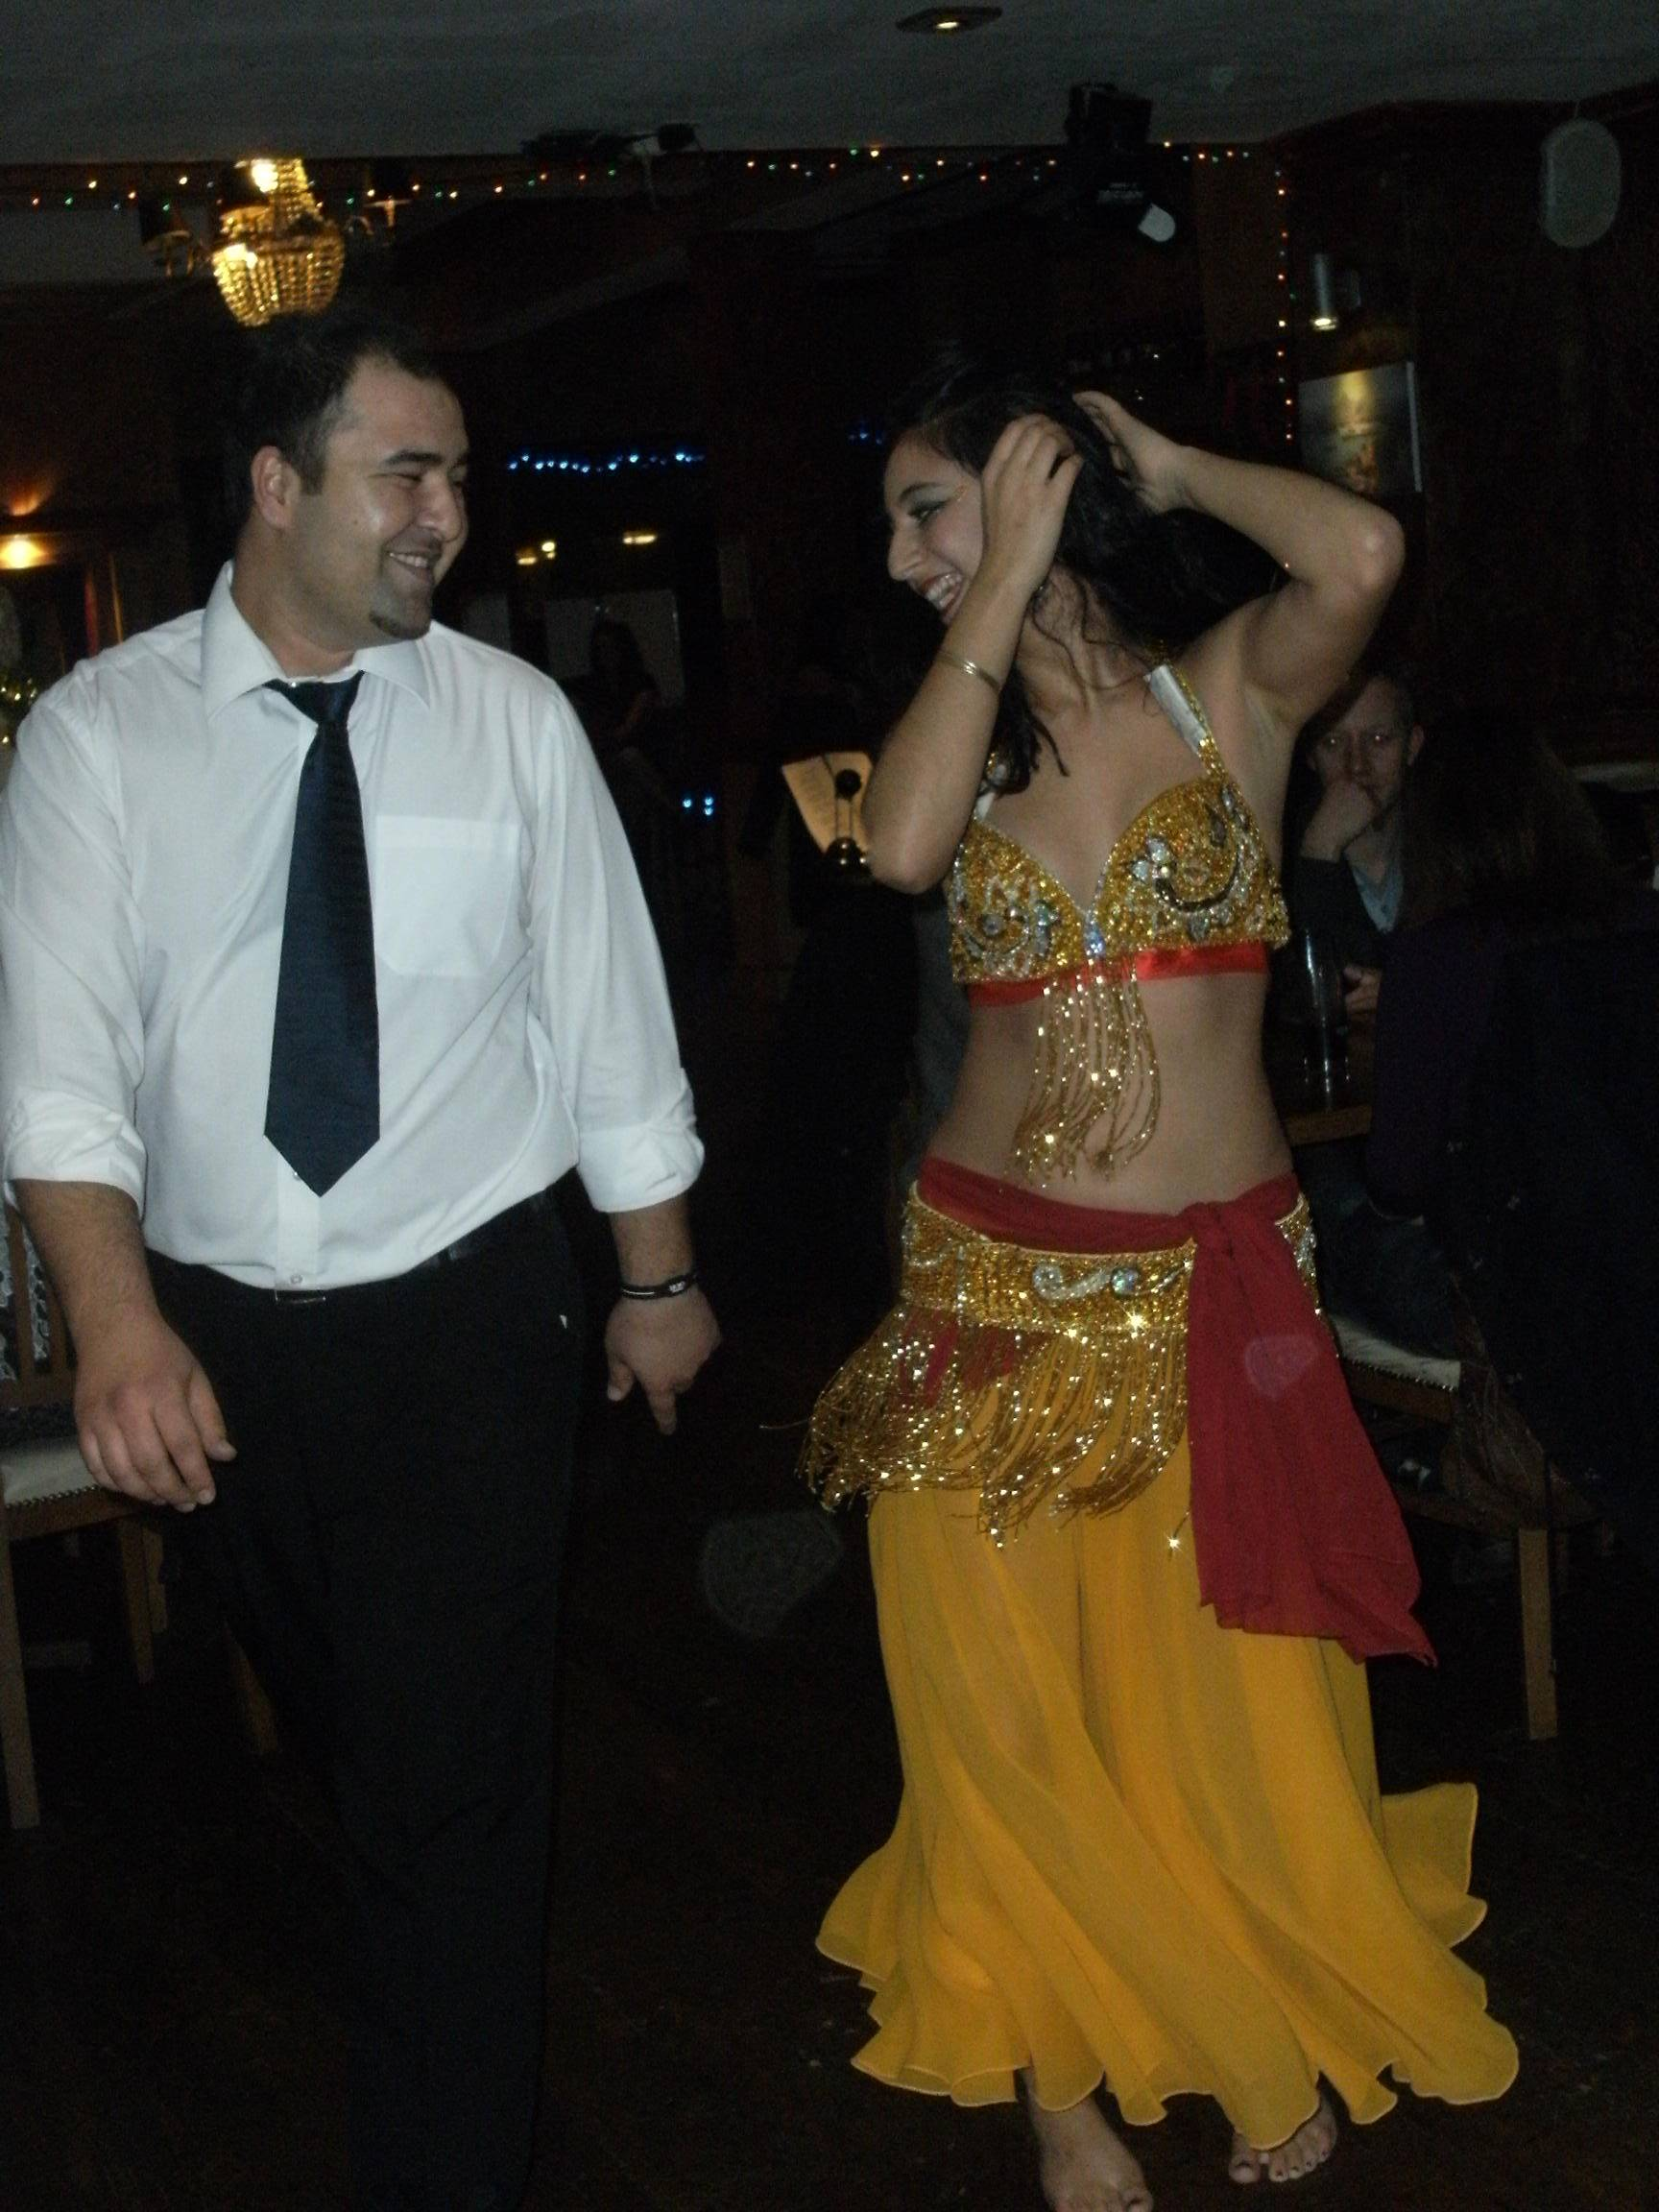 Dancing with the waiters!